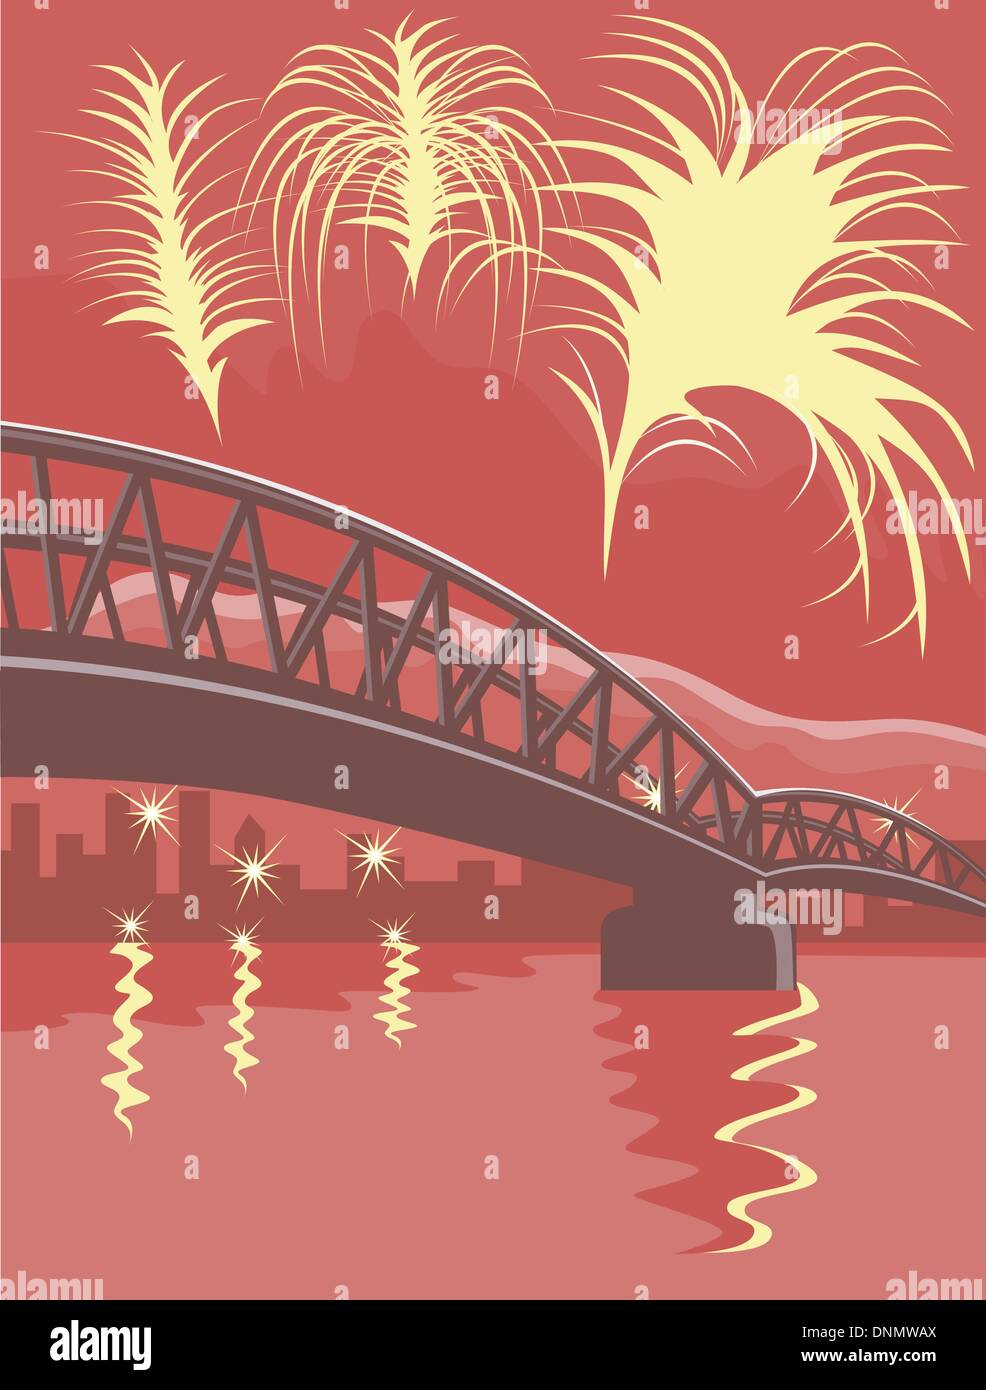 Illustration of a bridge and the sea with fireworks and buildings in the background, done in retro style. - Stock Vector